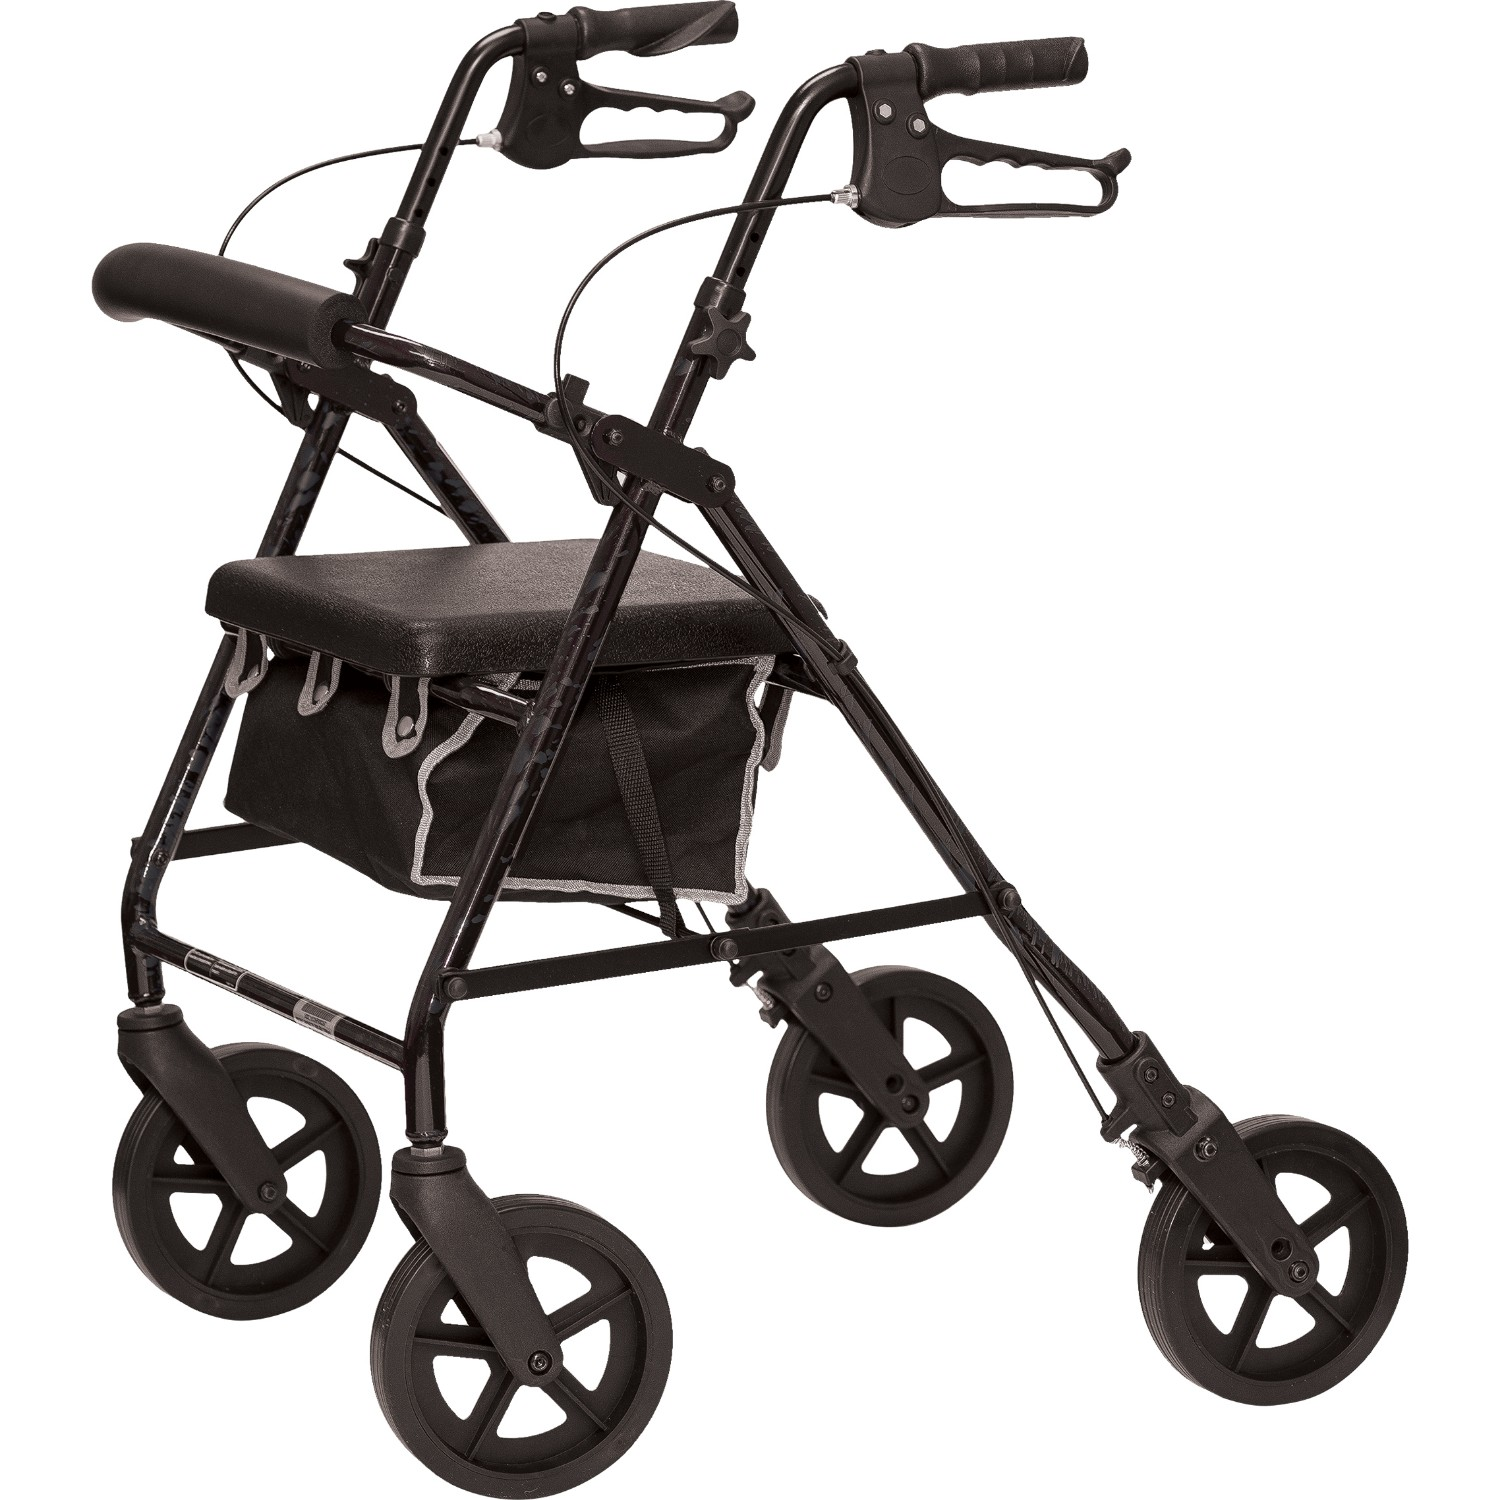 Deluxe Rollator with Padded Seat, 8-inch Wheels Granite Gray